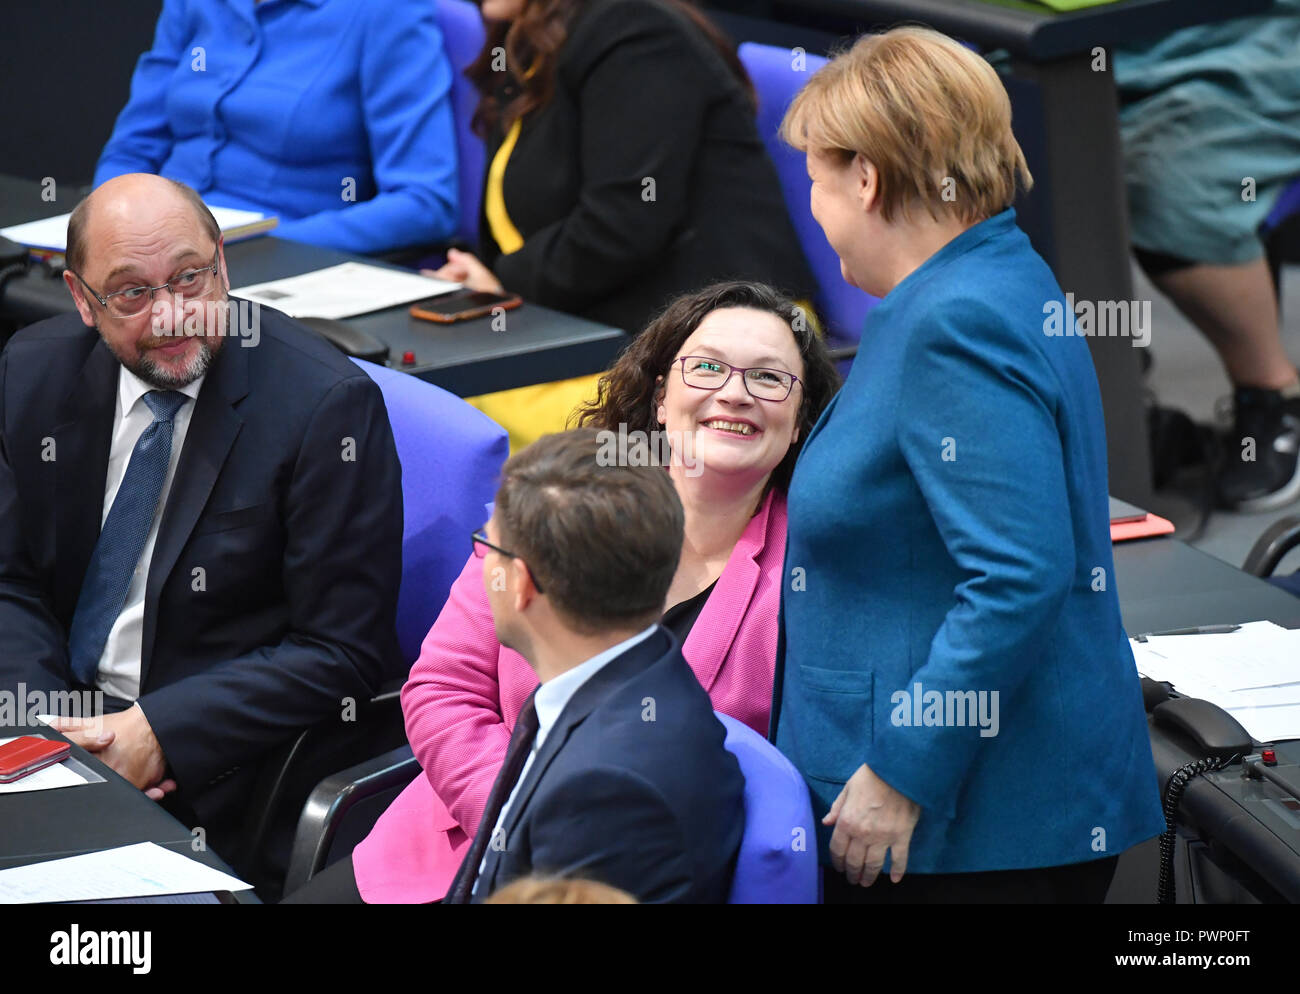 Berlin, Germany. 17th Oct, 2018. Chancellor Angela Merkel (CDU, r-l) talks to SPD Chairwomen Andrea Nahles and Martin Schulz (SPD) at the plenary session of the German Bundestag following their government declaration on the EU summit in Brussels. The 57th session of the 19th legislature will focus on European policy. Photo: Bernd Von Jutrczenka/dpa Credit: dpa picture alliance/Alamy Live News - Stock Image